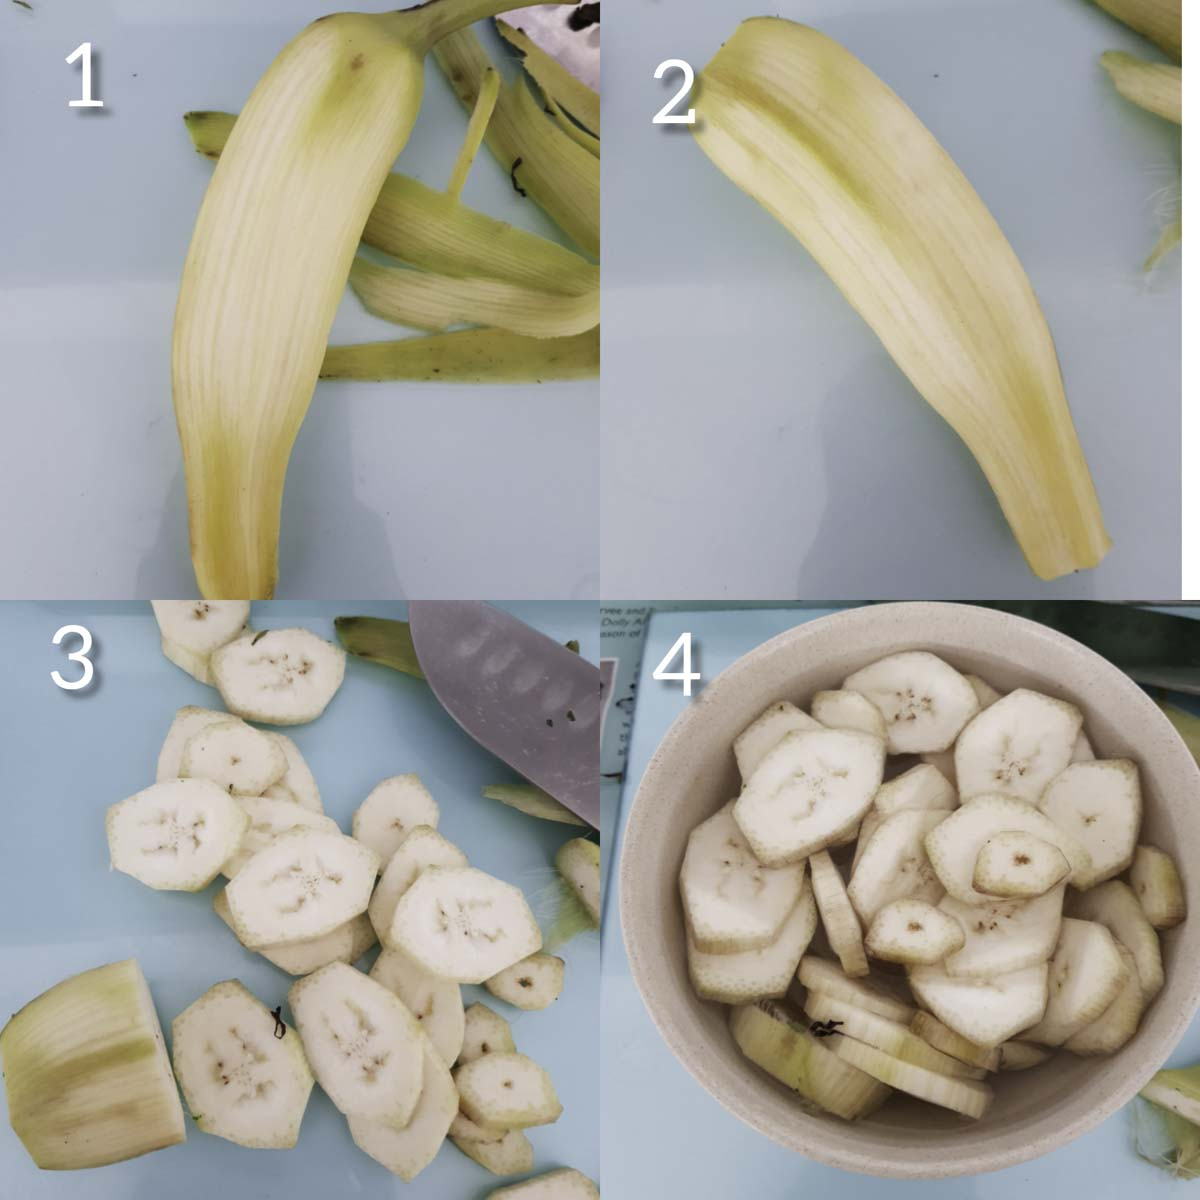 a collage of steps showing peeling ,slicing raw banana